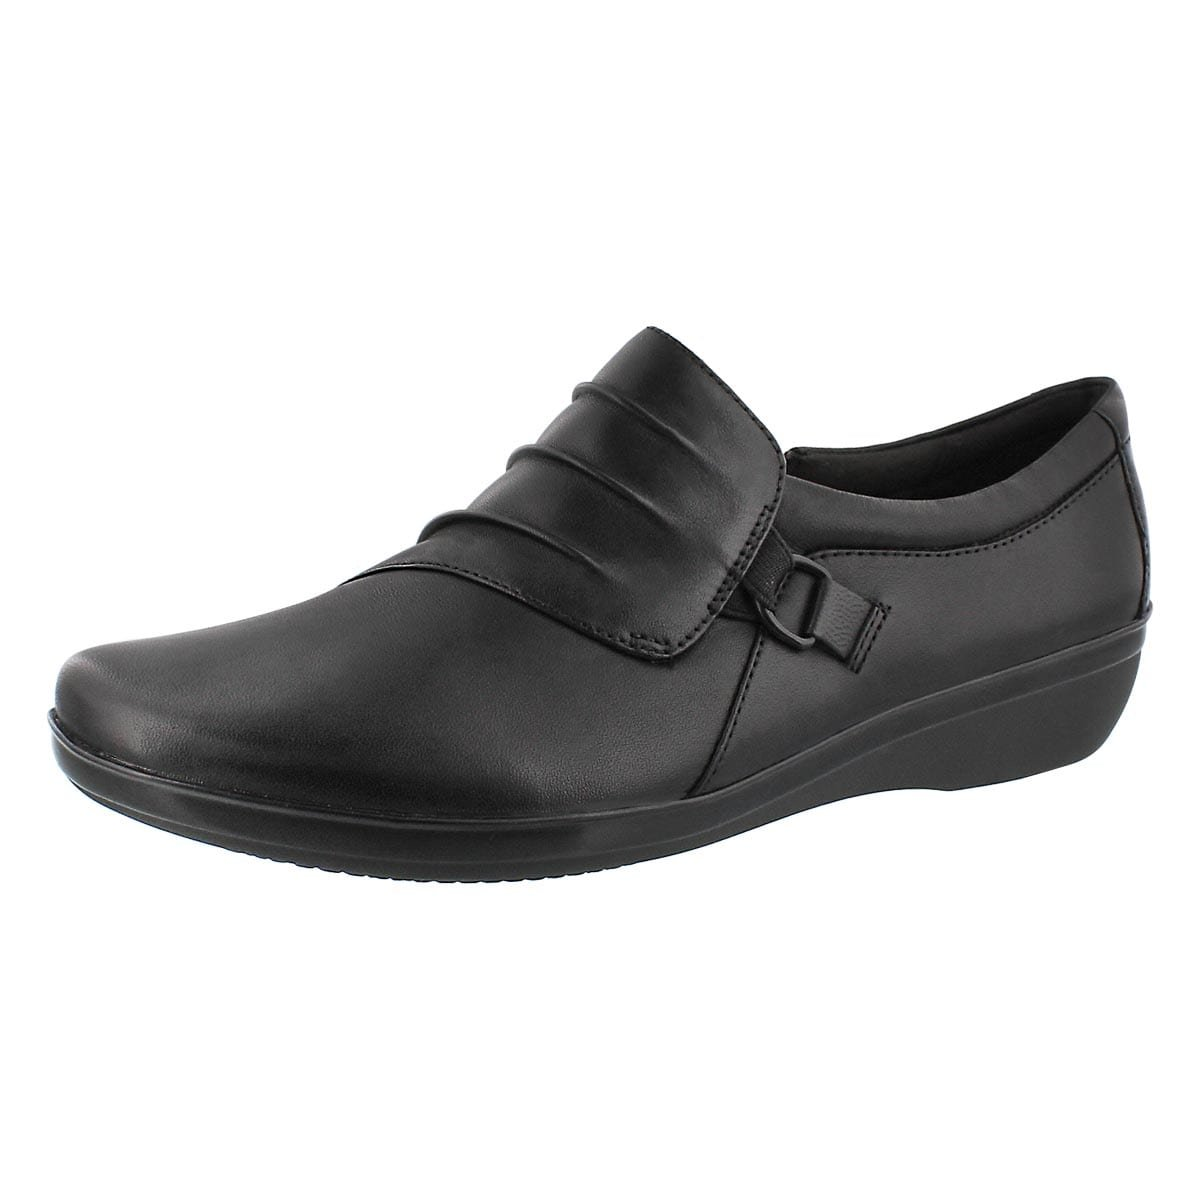 CLARKS Women's Everlay Heidi Casual Slip On - Wide Black 8.5 W US